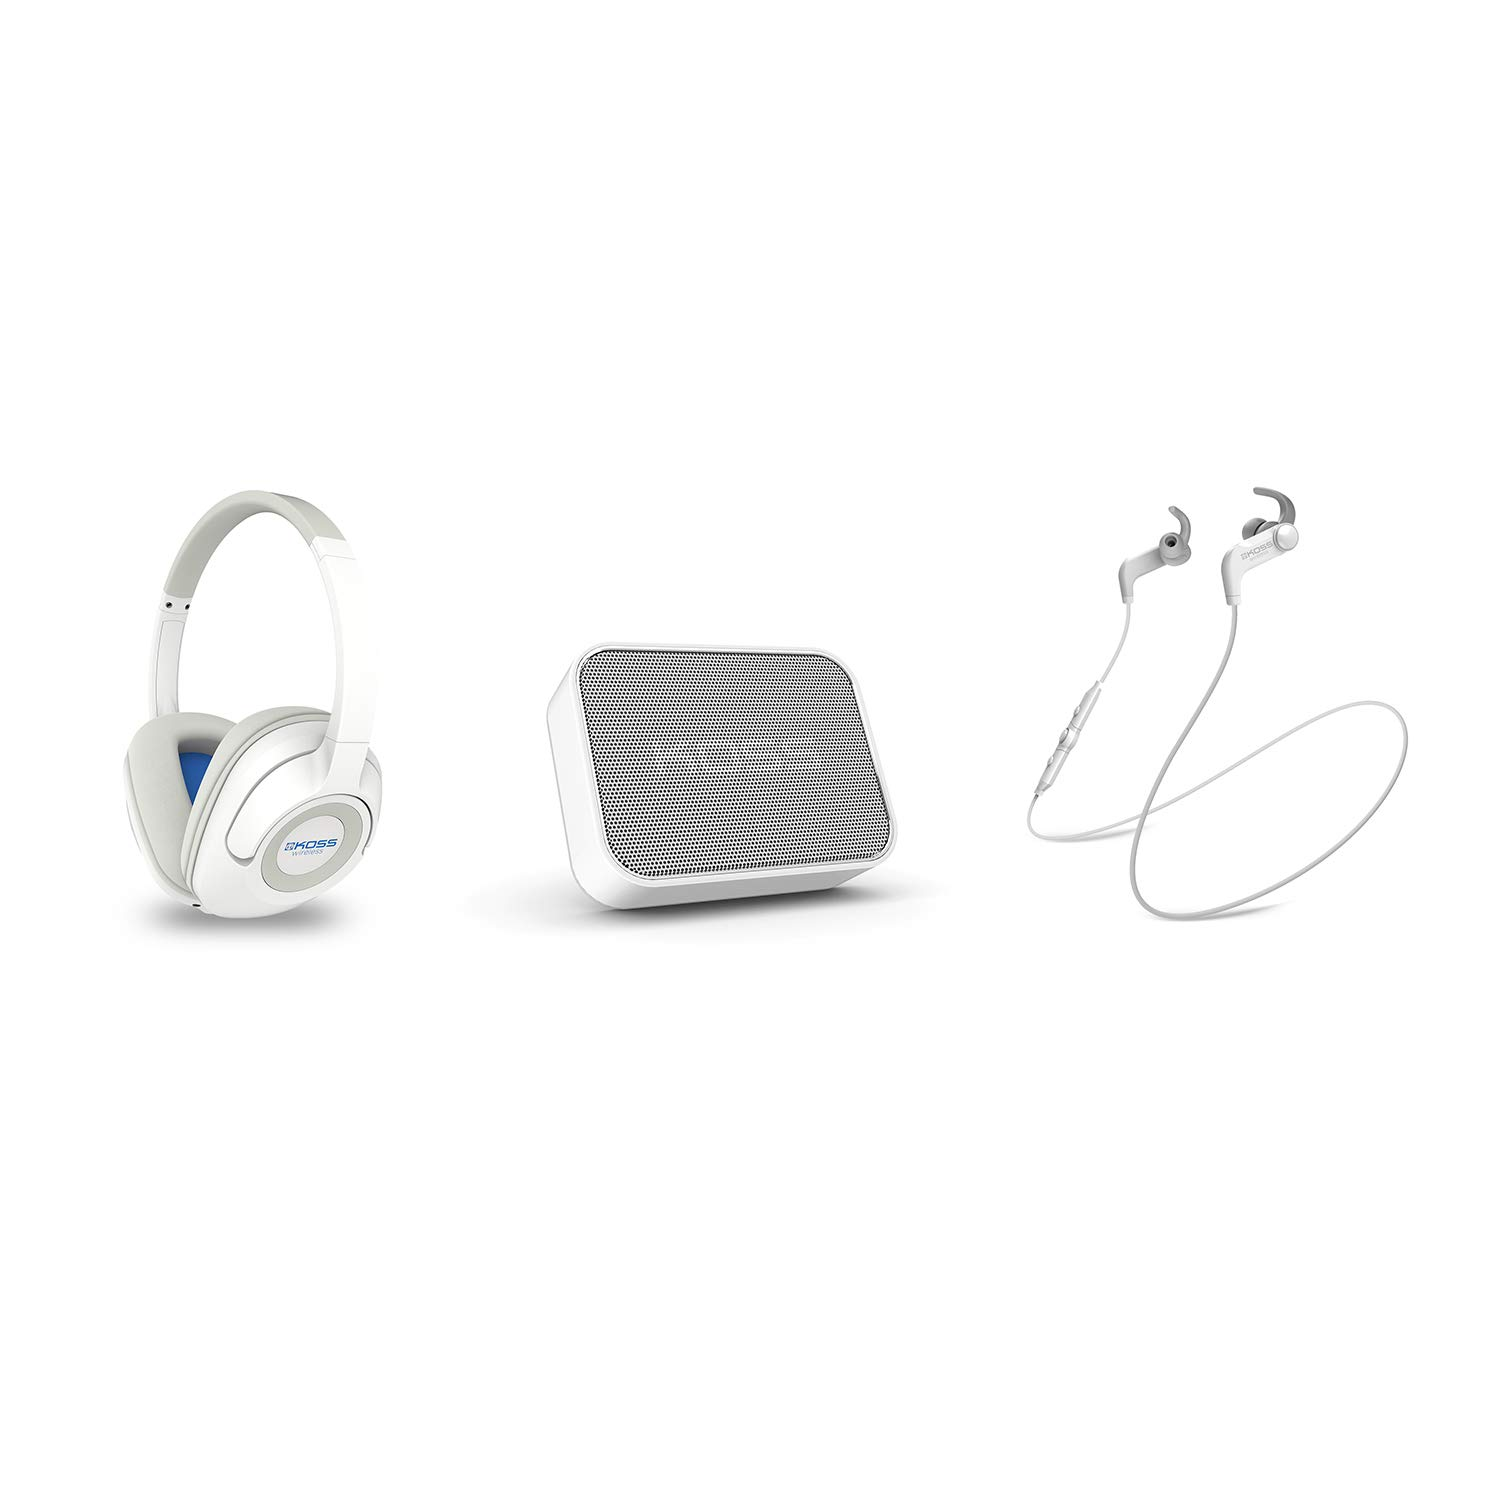 Koss Wireless Bluetooth Bundle White, BT539iW Over-Ear Headphone with Remote and in-line Microphone, BTS1W Portable Speaker, BT190iW Earbuds with in-Line Microphone and Touch Controls